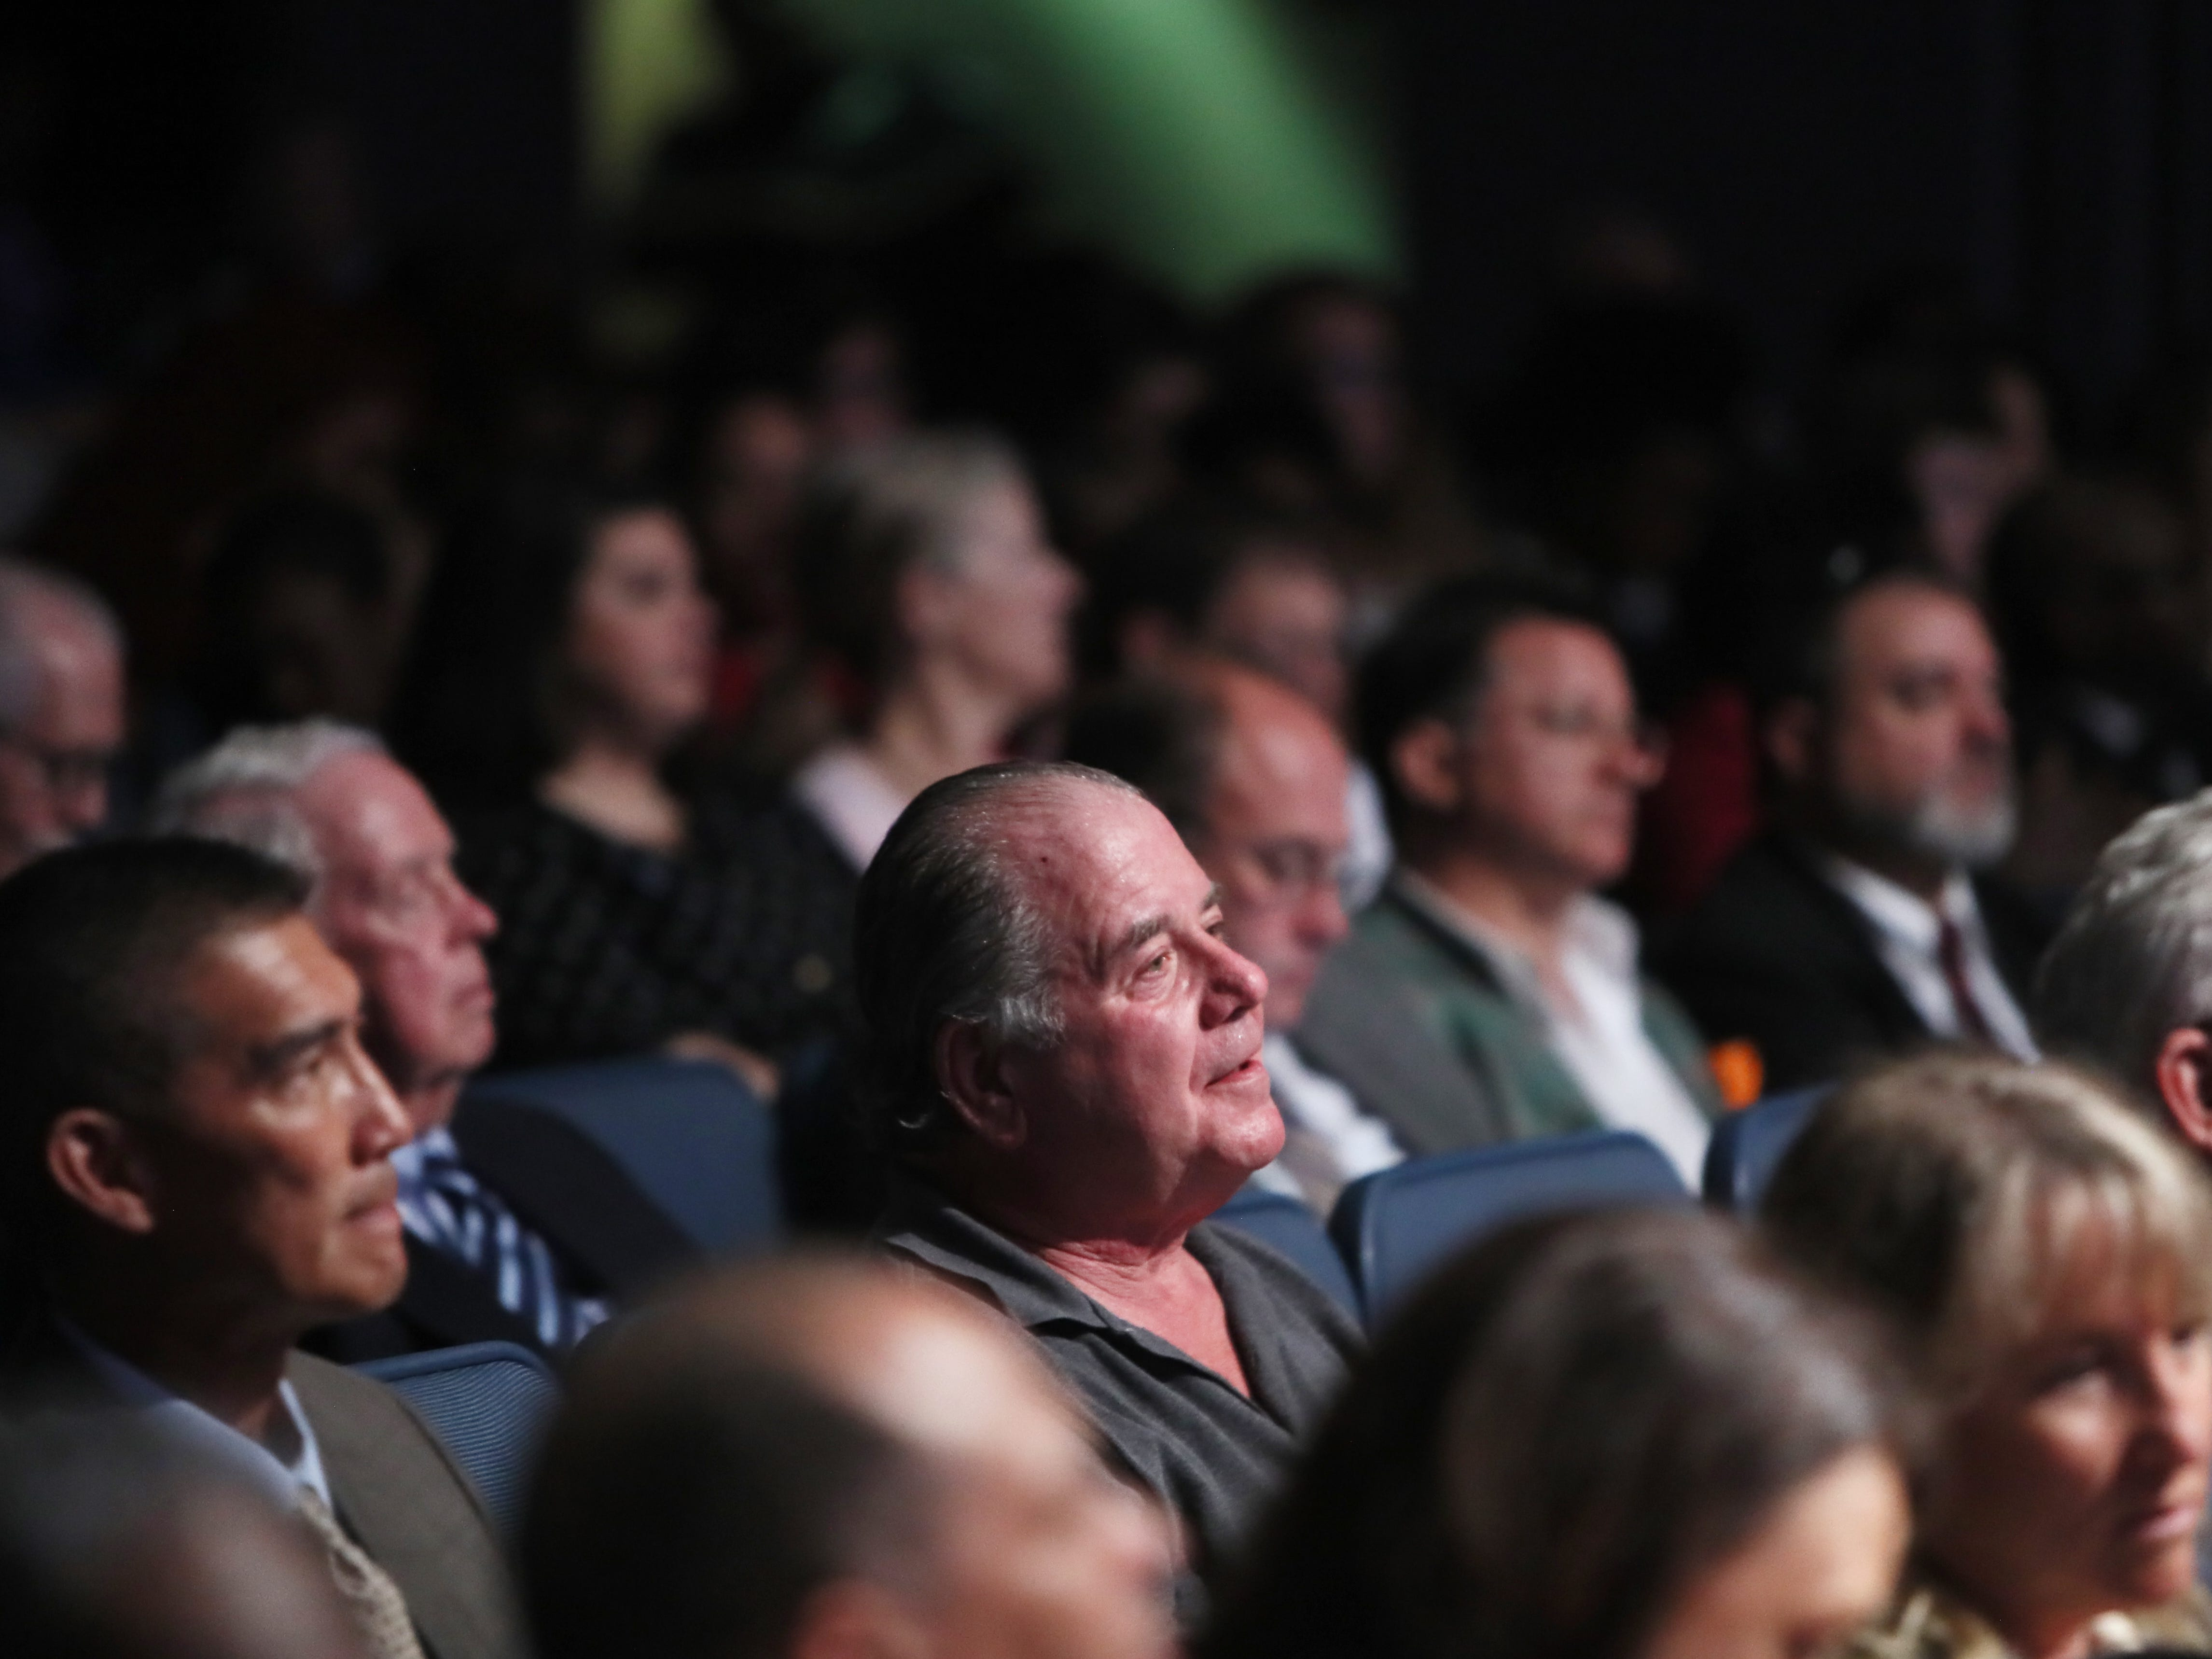 The crowd listens to the debate between Tennessee gubernatorial candidates Democrat Karl Dean and Republican Bill Lee at the University of Memphis' Michael D. Rose Theater in Memphis, Tenn., on Tuesday, Oct. 2, 2018.